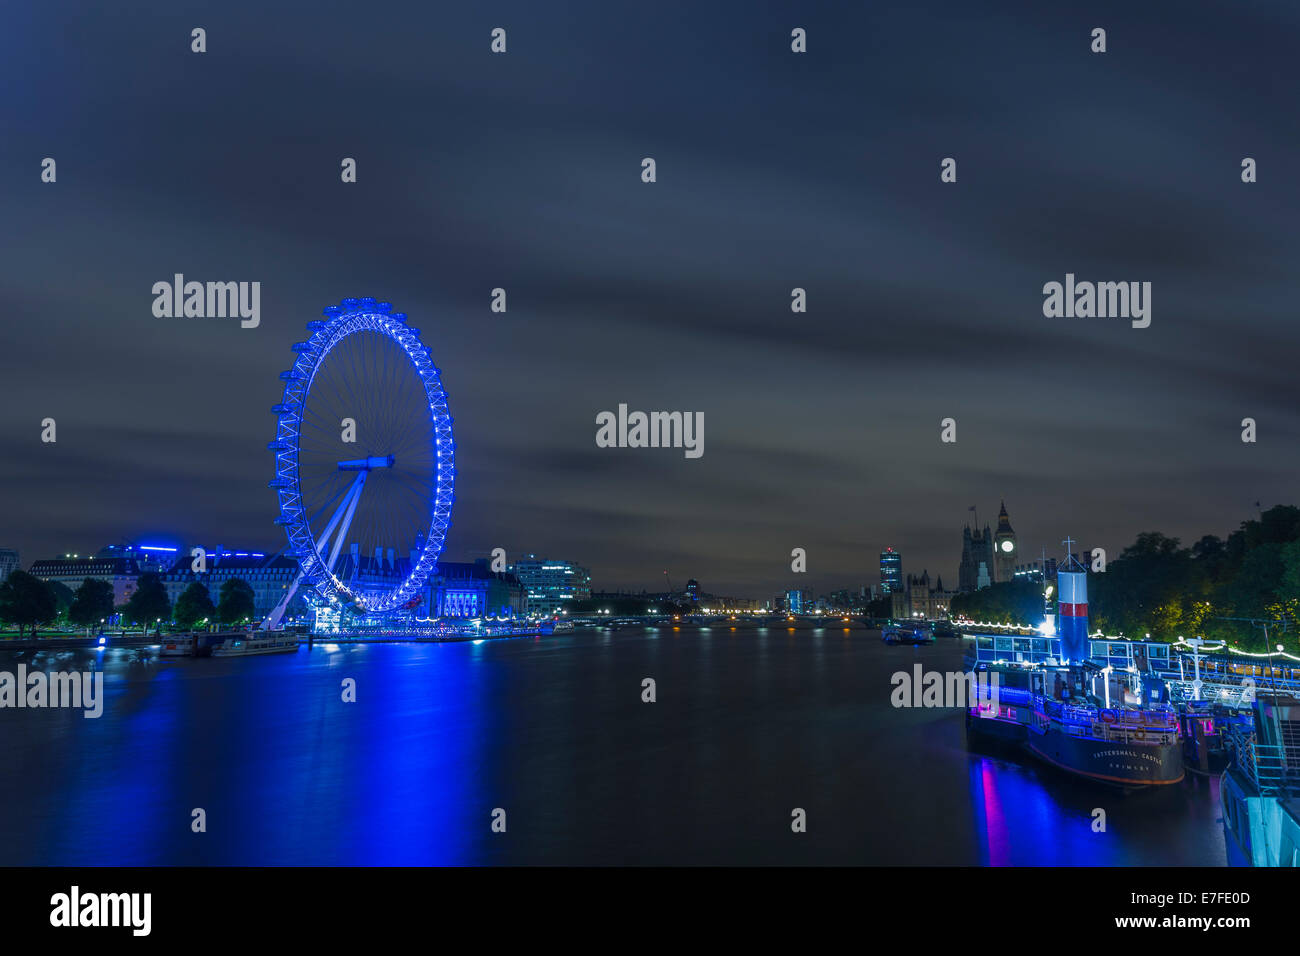 London Eye and Big Ben at night, Thames River, Westminster, London, England, United Kingdom Stock Photo